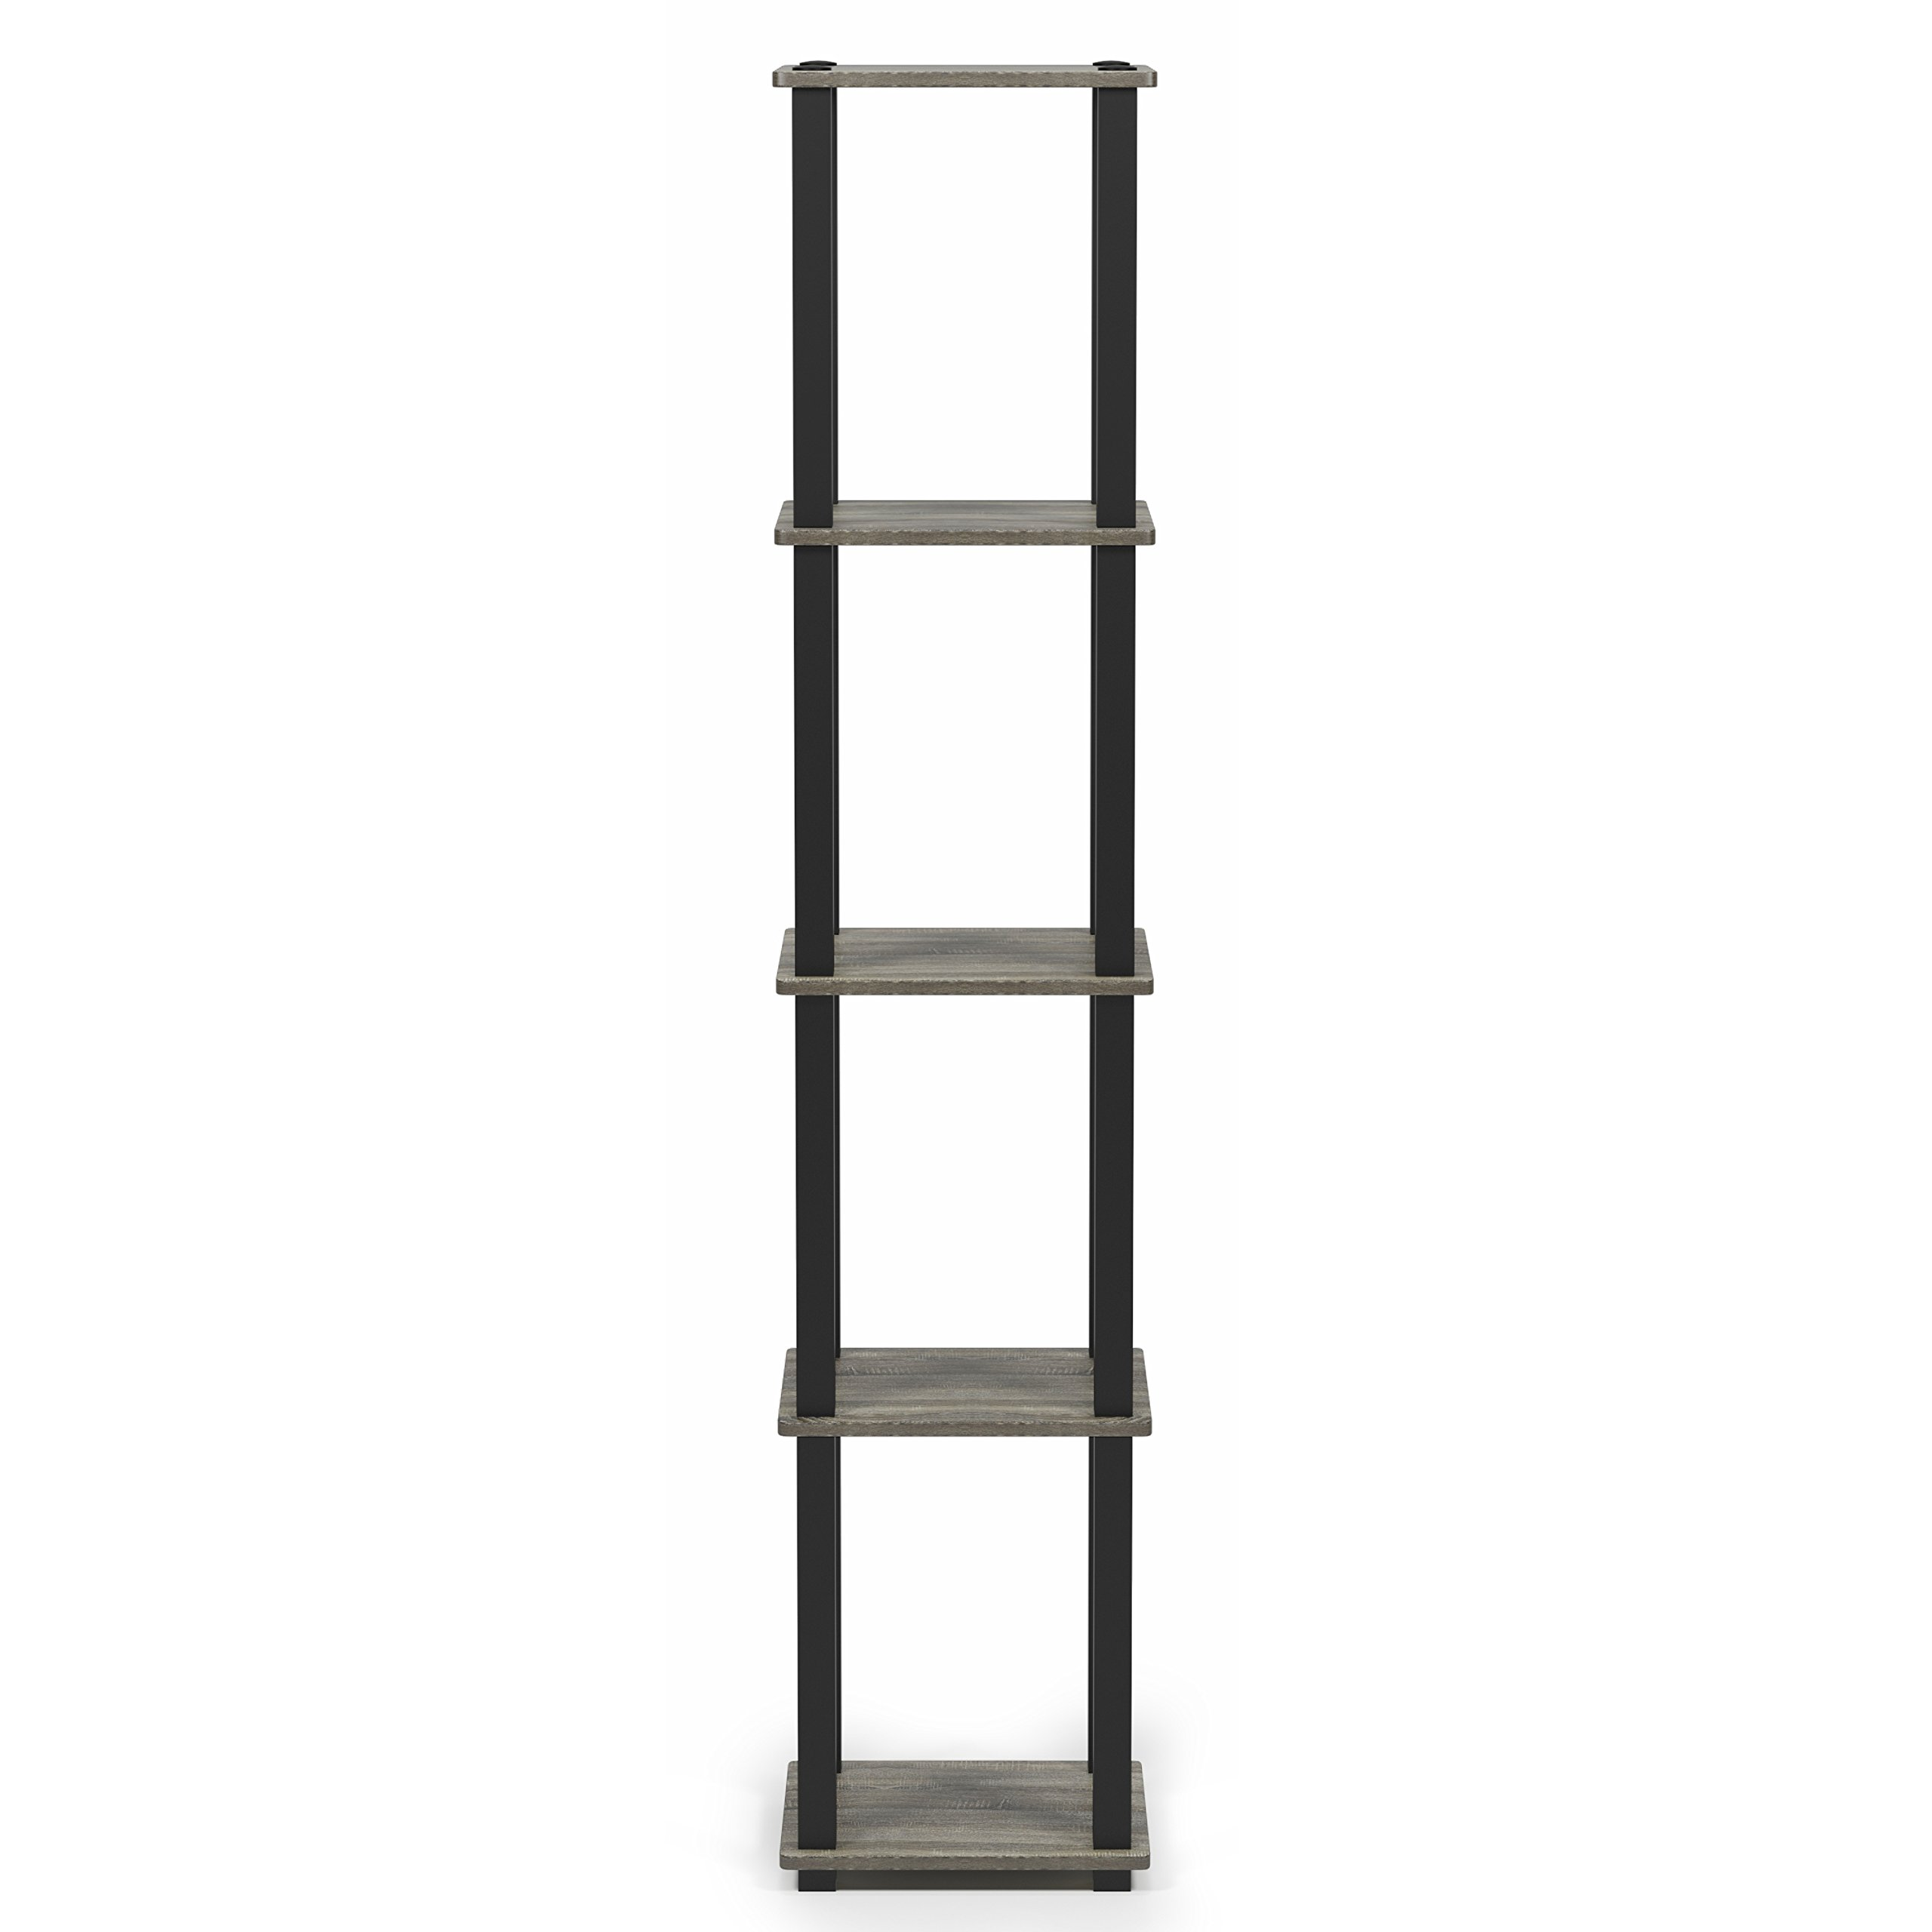 Furinno 18026GYW/BK Turn-S 5-Tier Compact Multipurpose Shelf, Square Tube, French Oak Grey/Black by Furinno (Image #5)